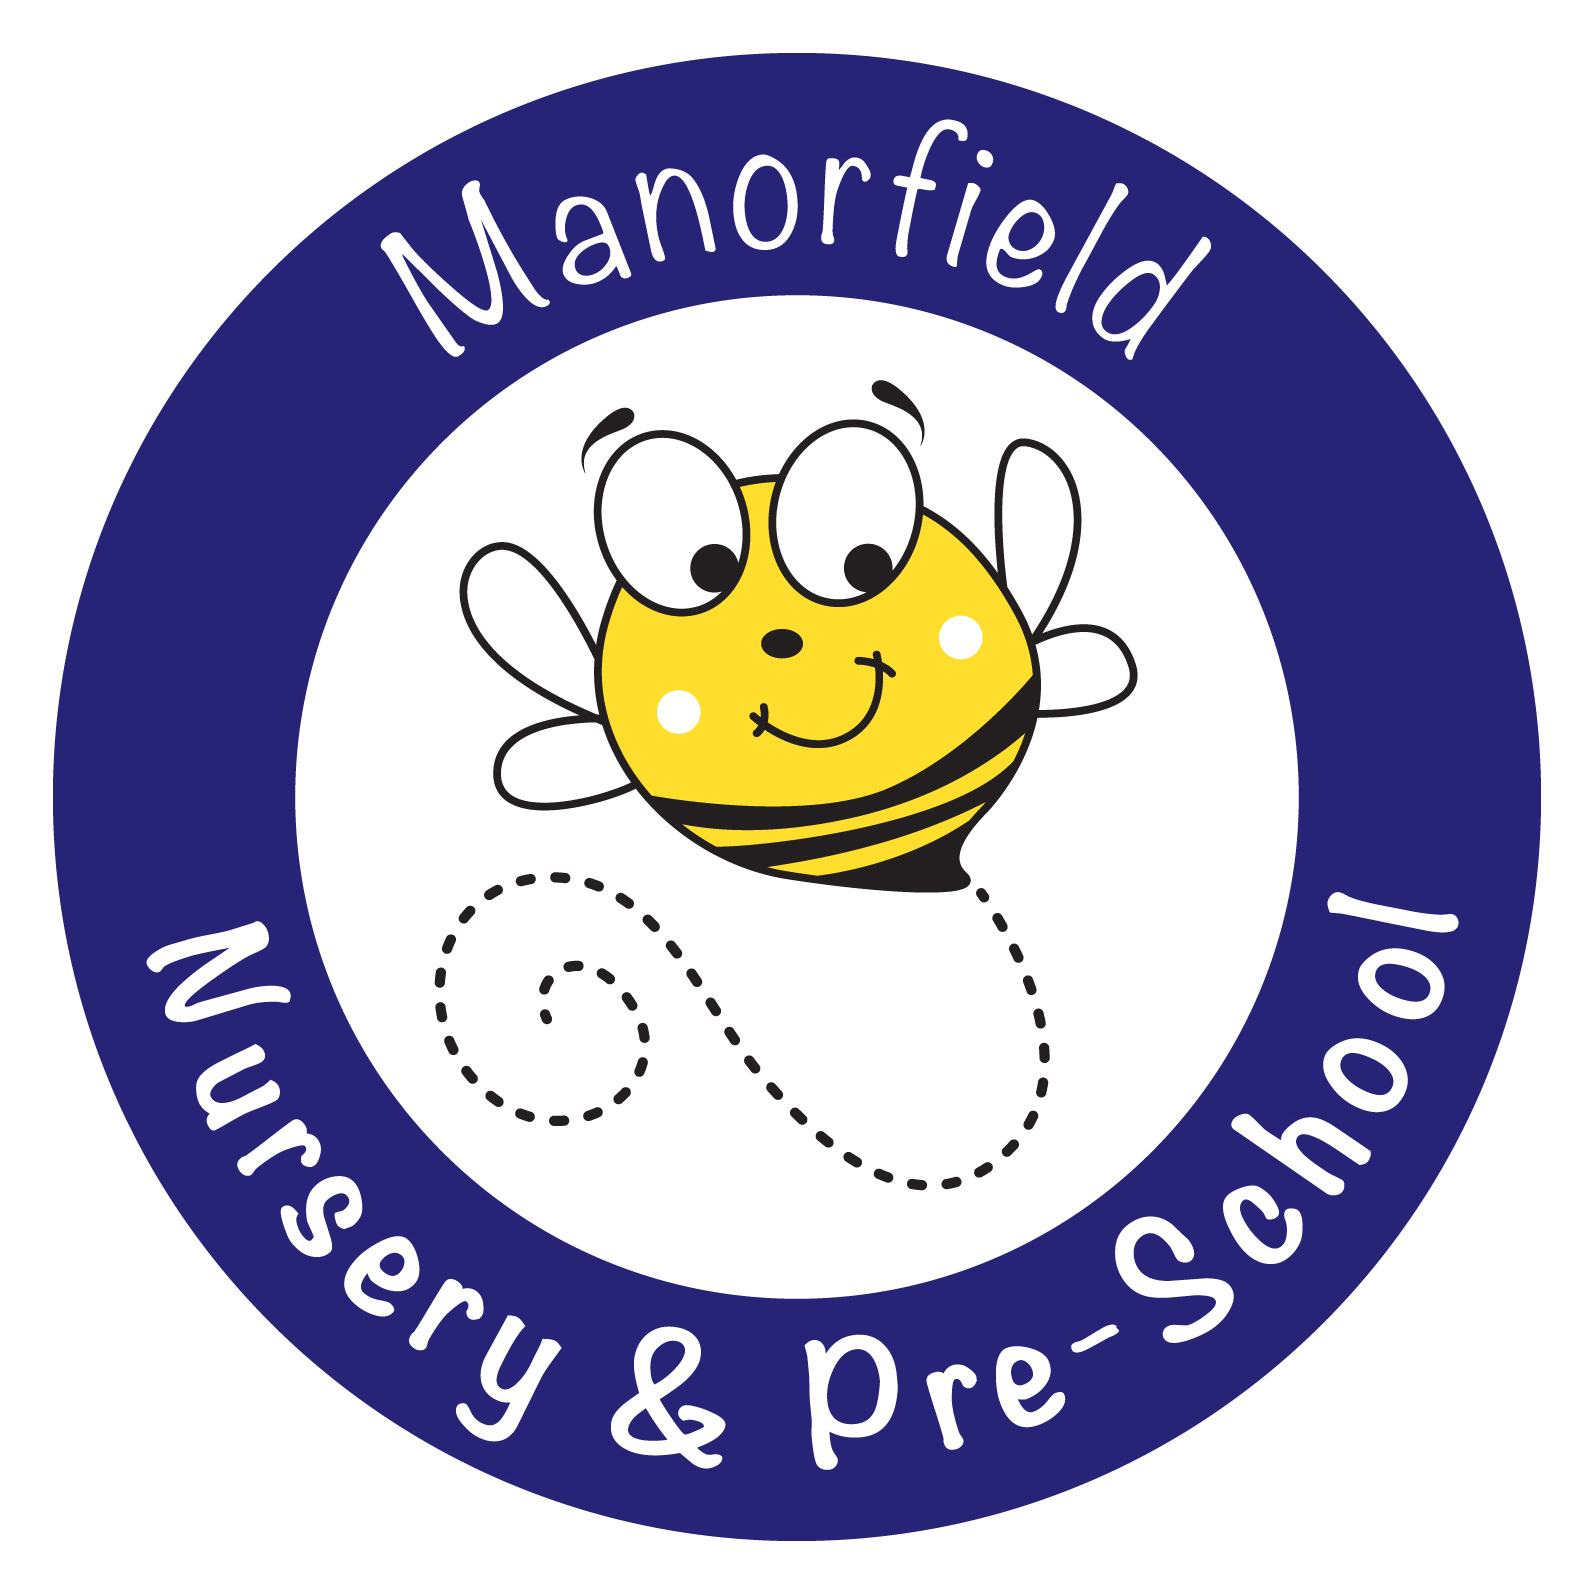 Manorfield Nursery & Pre-School Logo Icon Outlined Colour.jpg